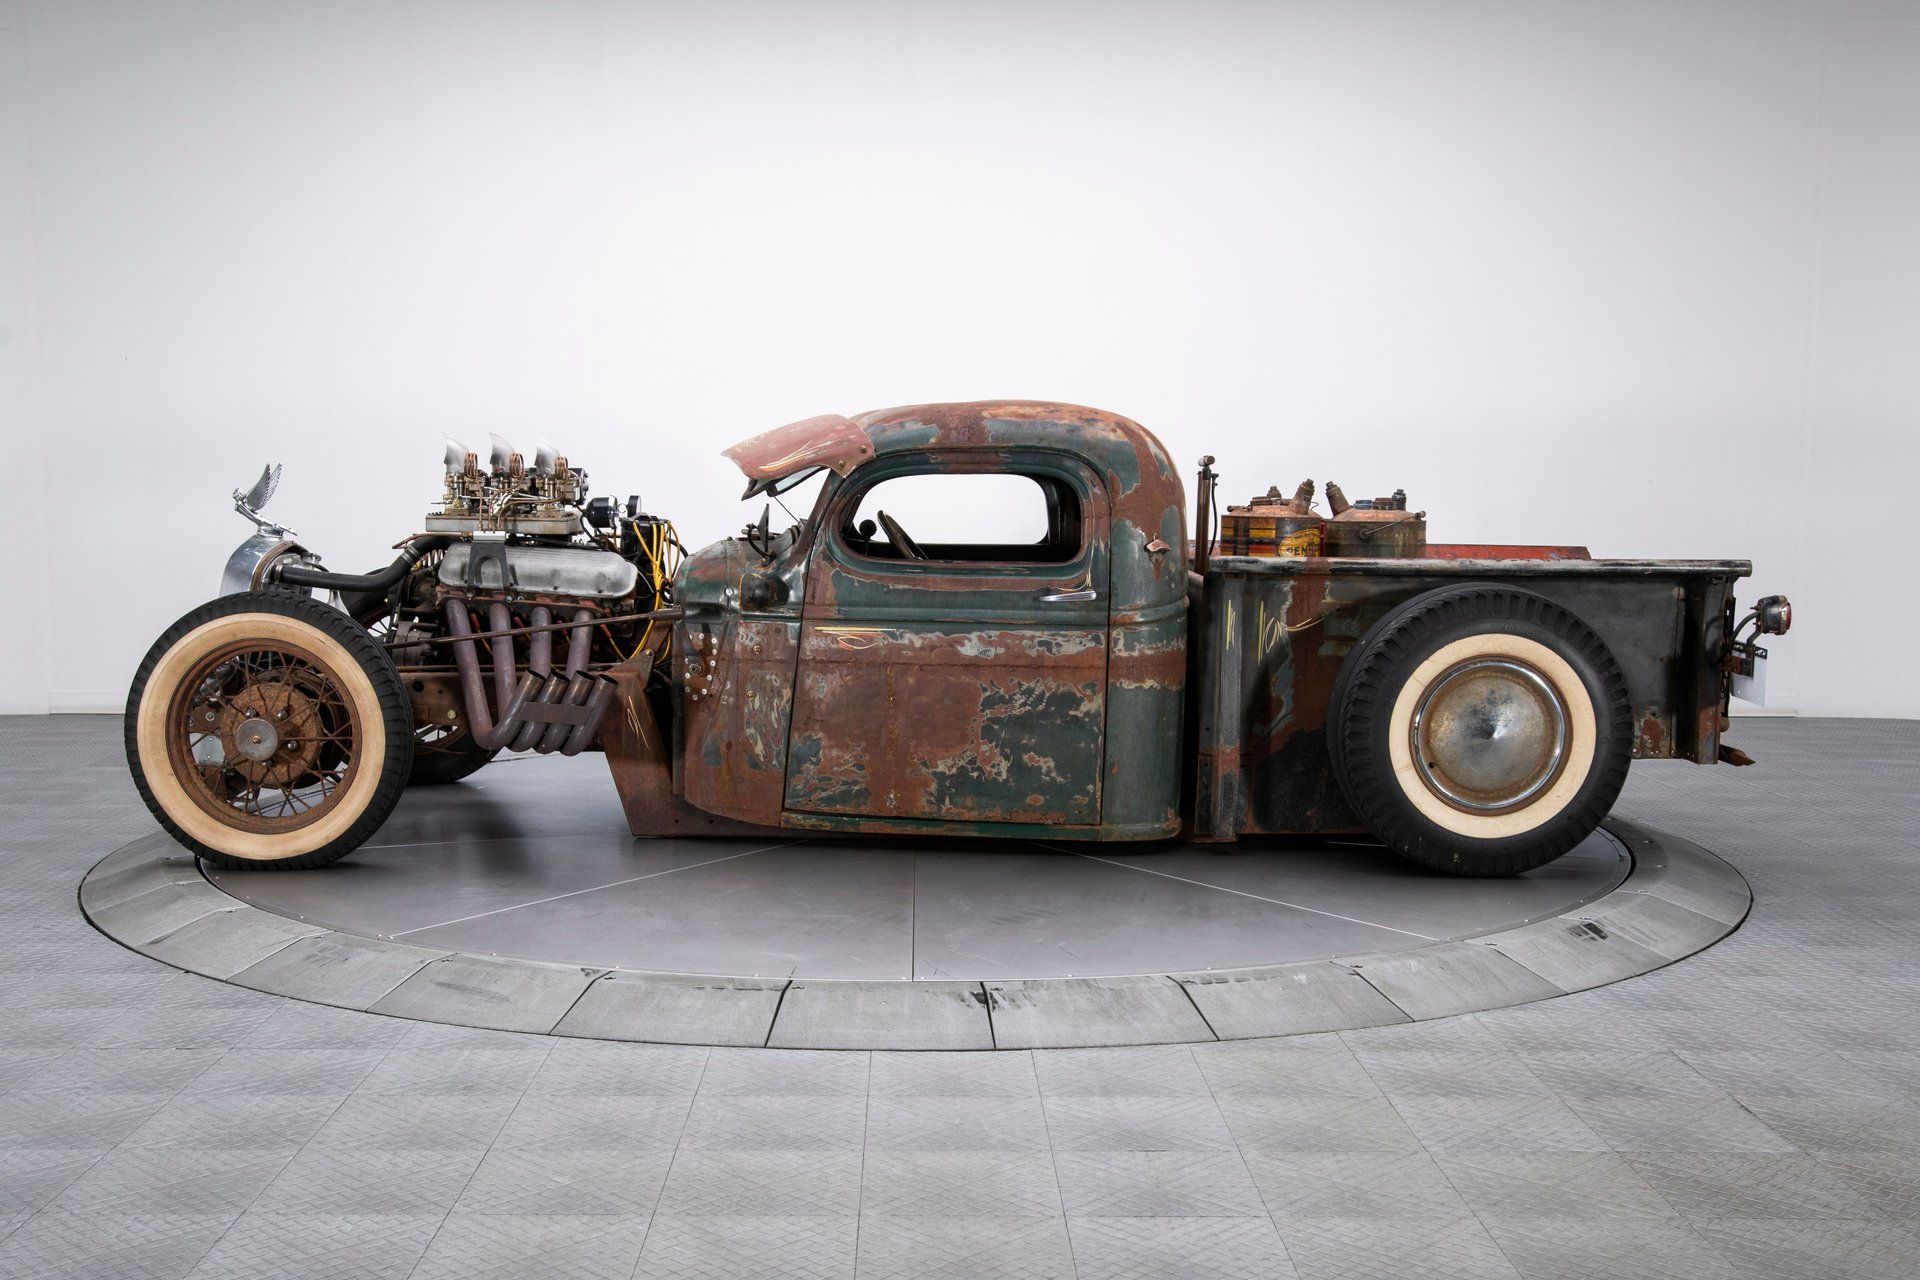 Take A Ride On The Wild Side In This Custom 1949 Chevy Rat Rod